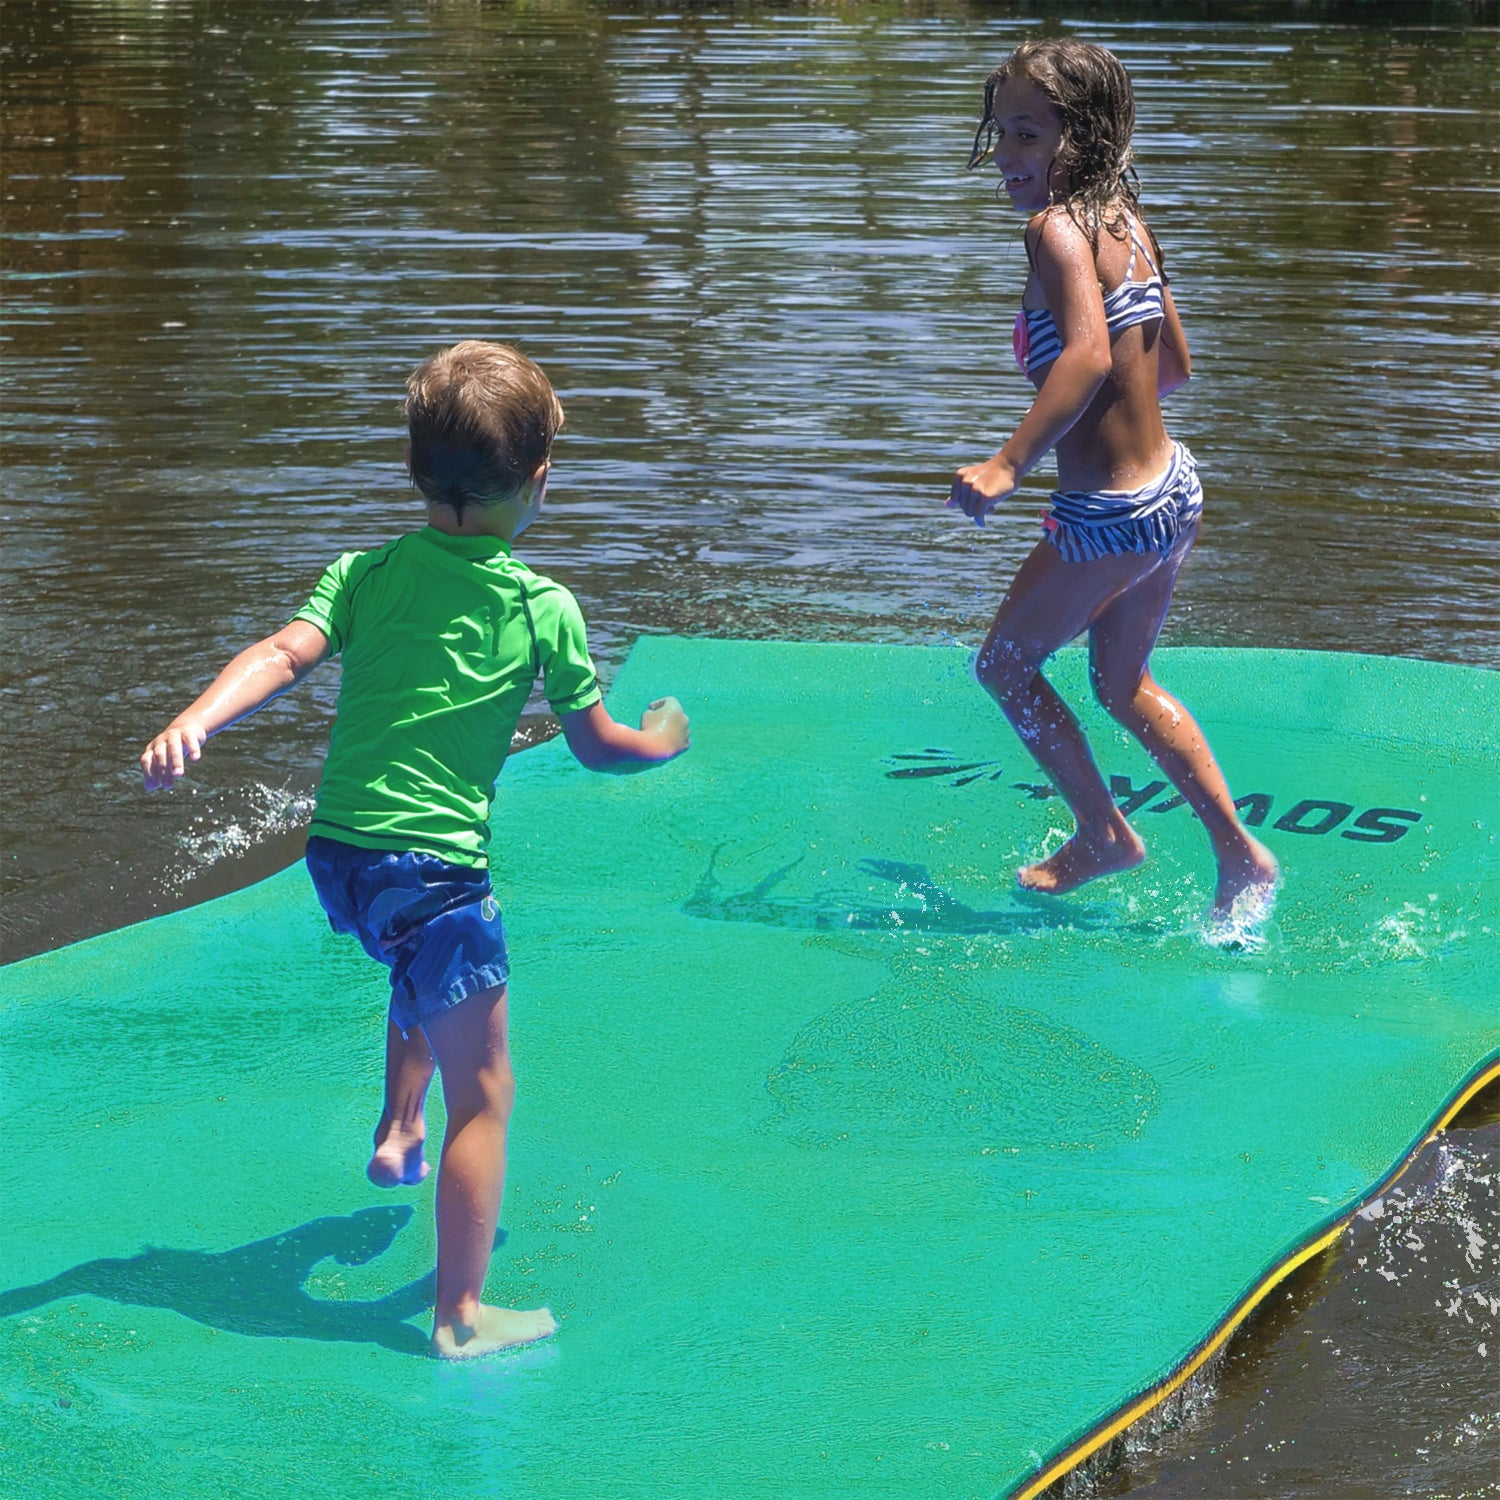 Floating Island For Lakes or Pools - 12 X 6 FEET (GREEN/BLACK/YELLOW)